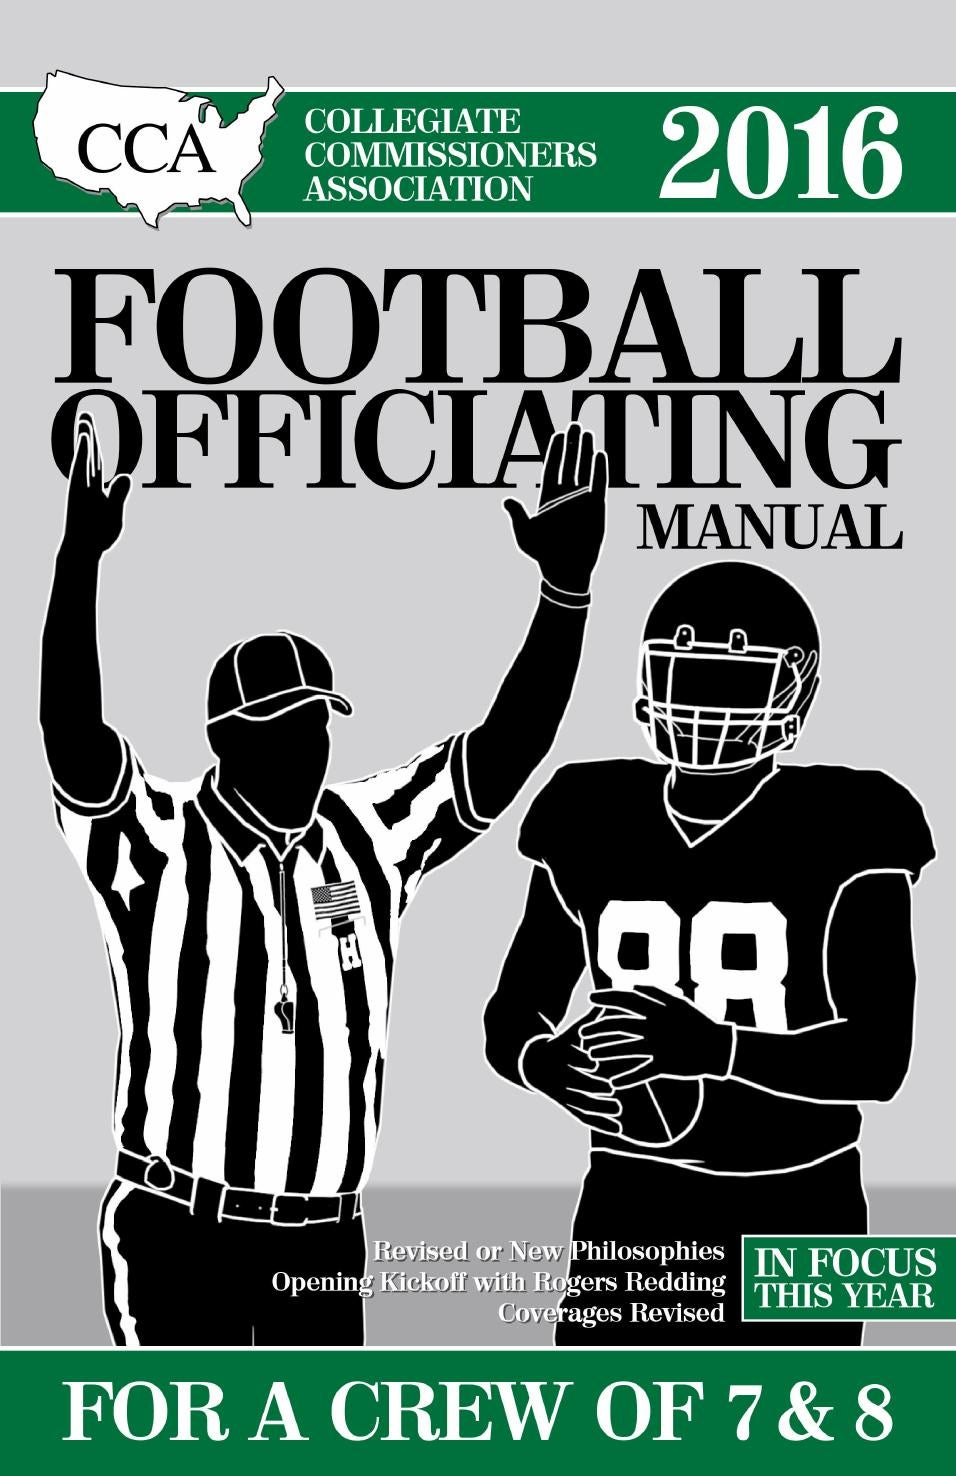 2016 CCA Crew of 7 & 8 College Football Officiating Manual- Sample Chapter  by Referee Magazine - issuu